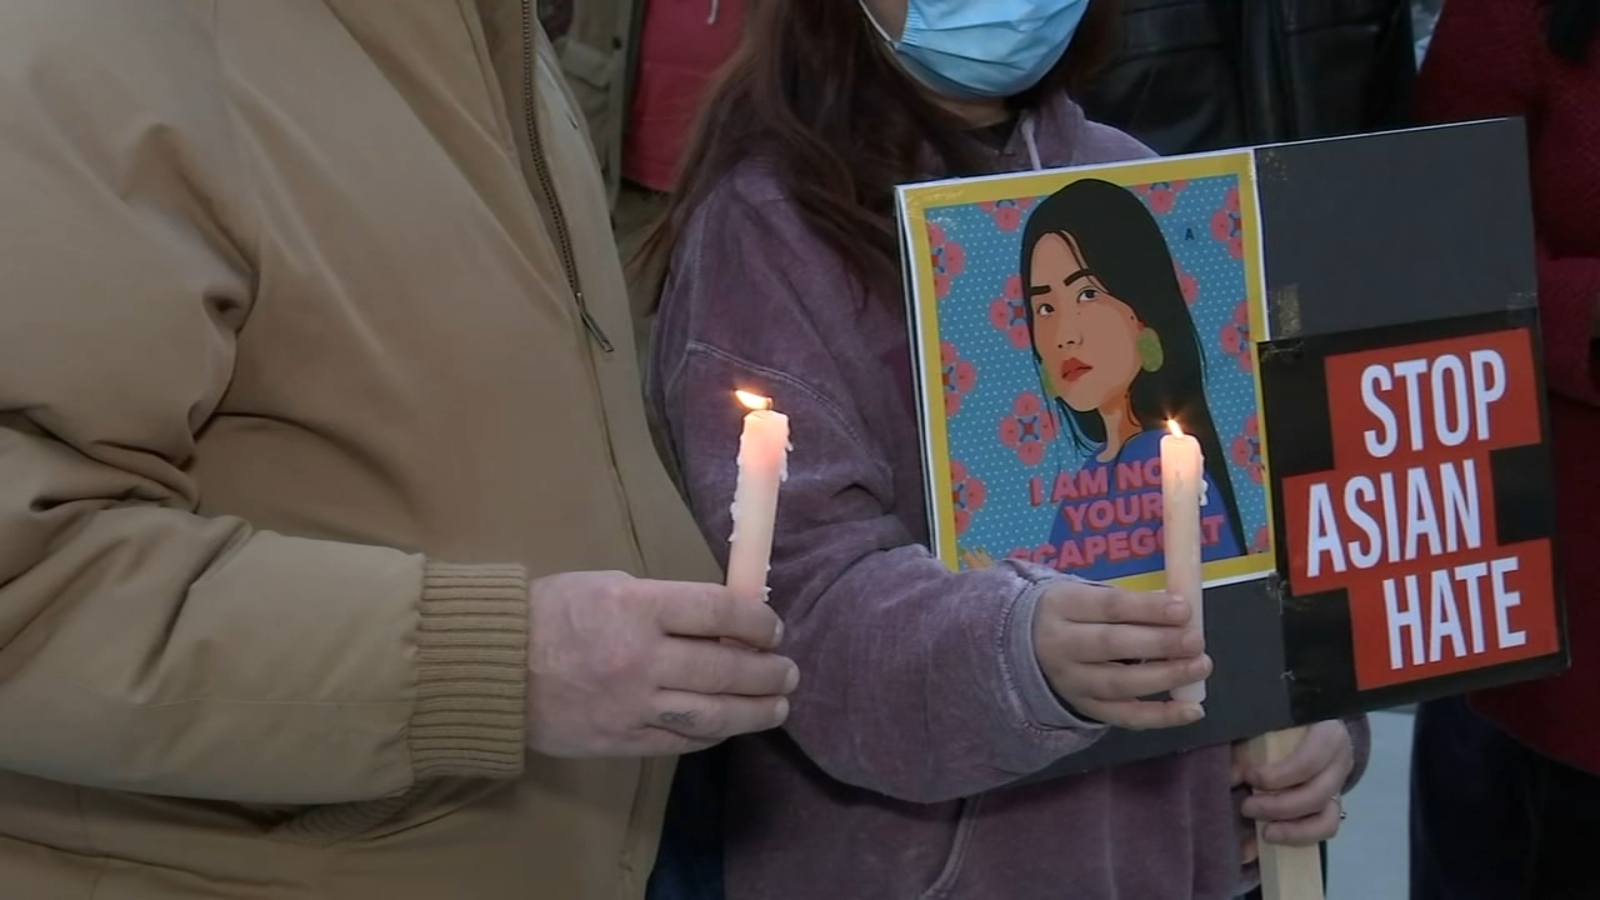 abc11.com: Cary joins in nationwide solidarity supporting Asian Americans after Atlanta spa shootings